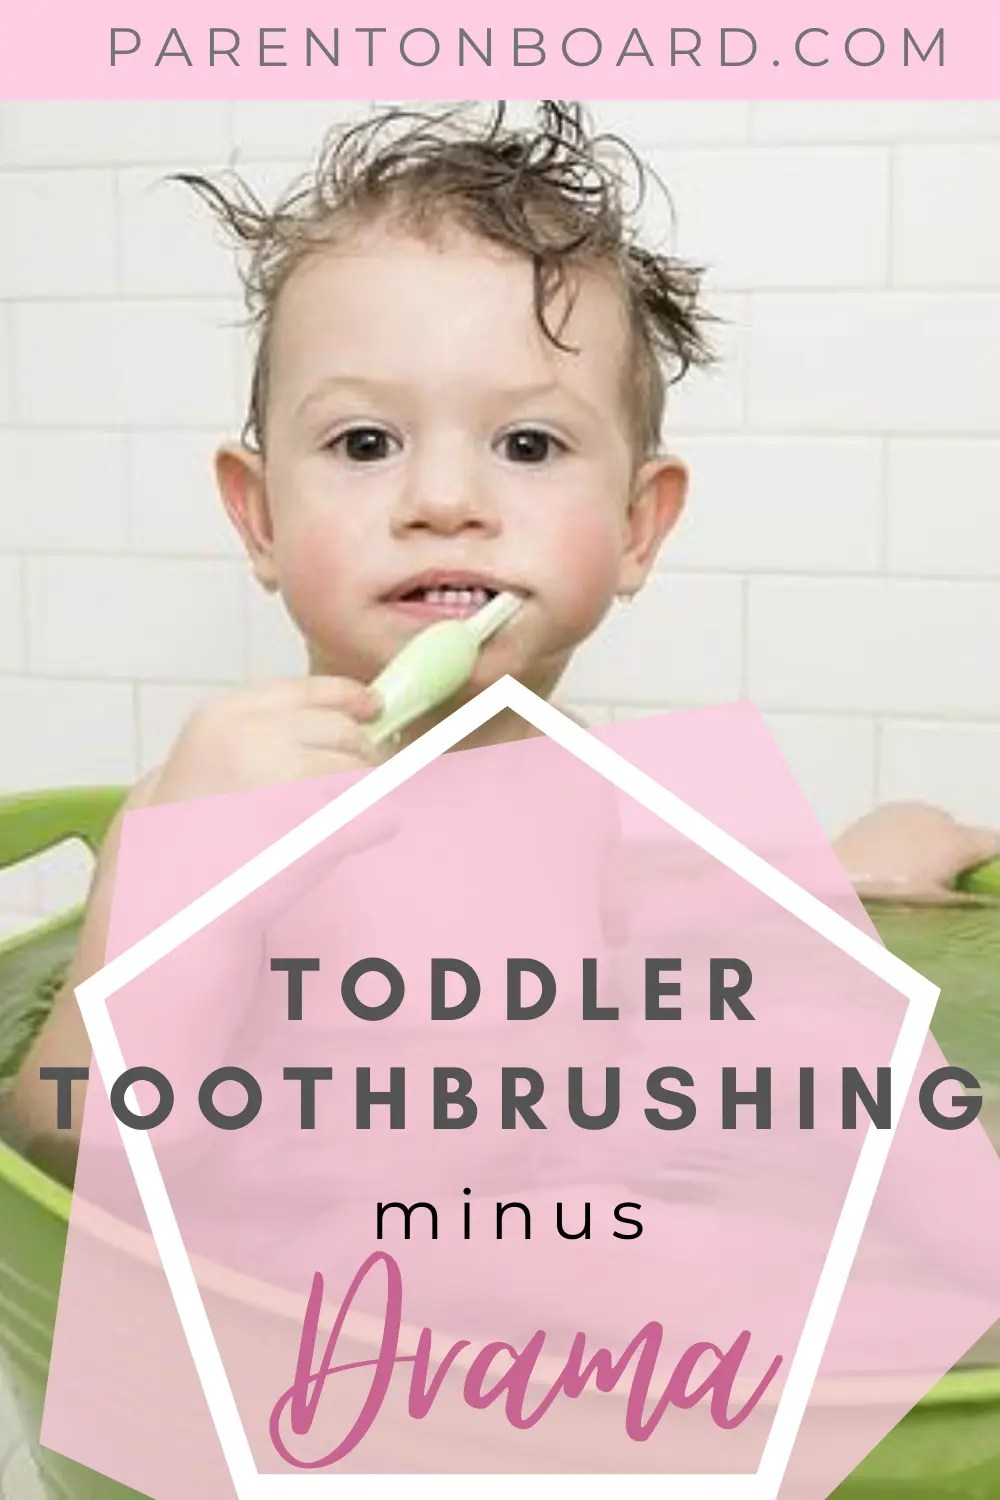 Pin Image of Toddler Brushing Teeth in a small Tub